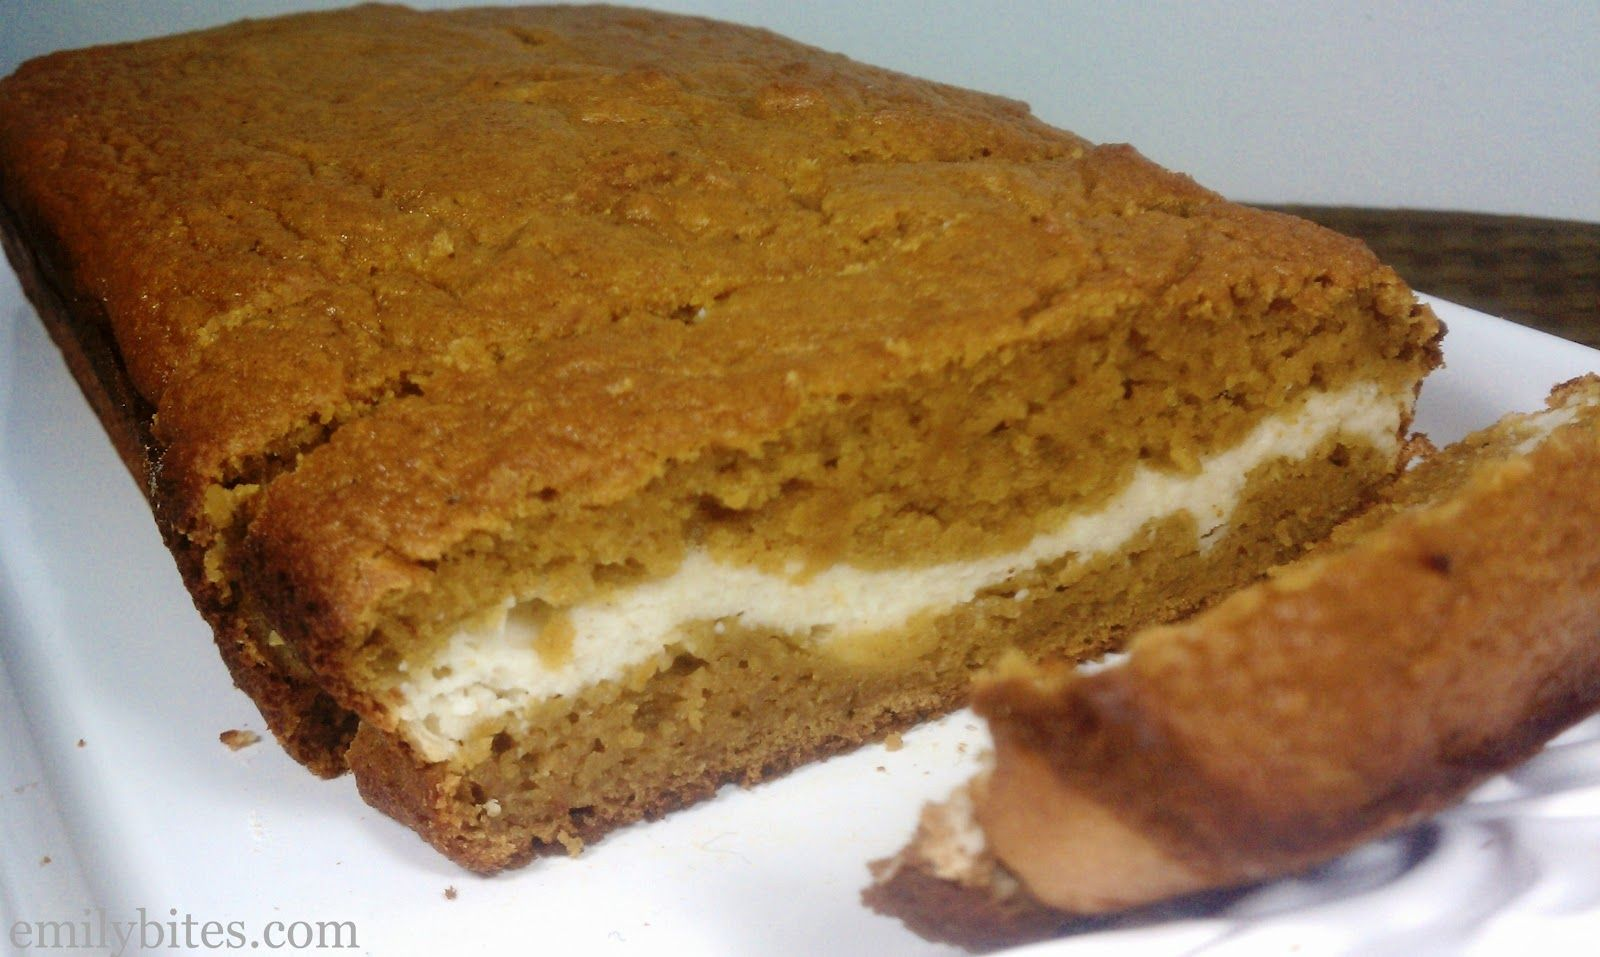 7/29/13 - Emily Bites - Weight Watchers Friendly Recipes: Pumpkin & Cream Bread - Turned out great. Texture is very smoothy and moist. The cream cheese frosting could be a little sweeter, but will make again.